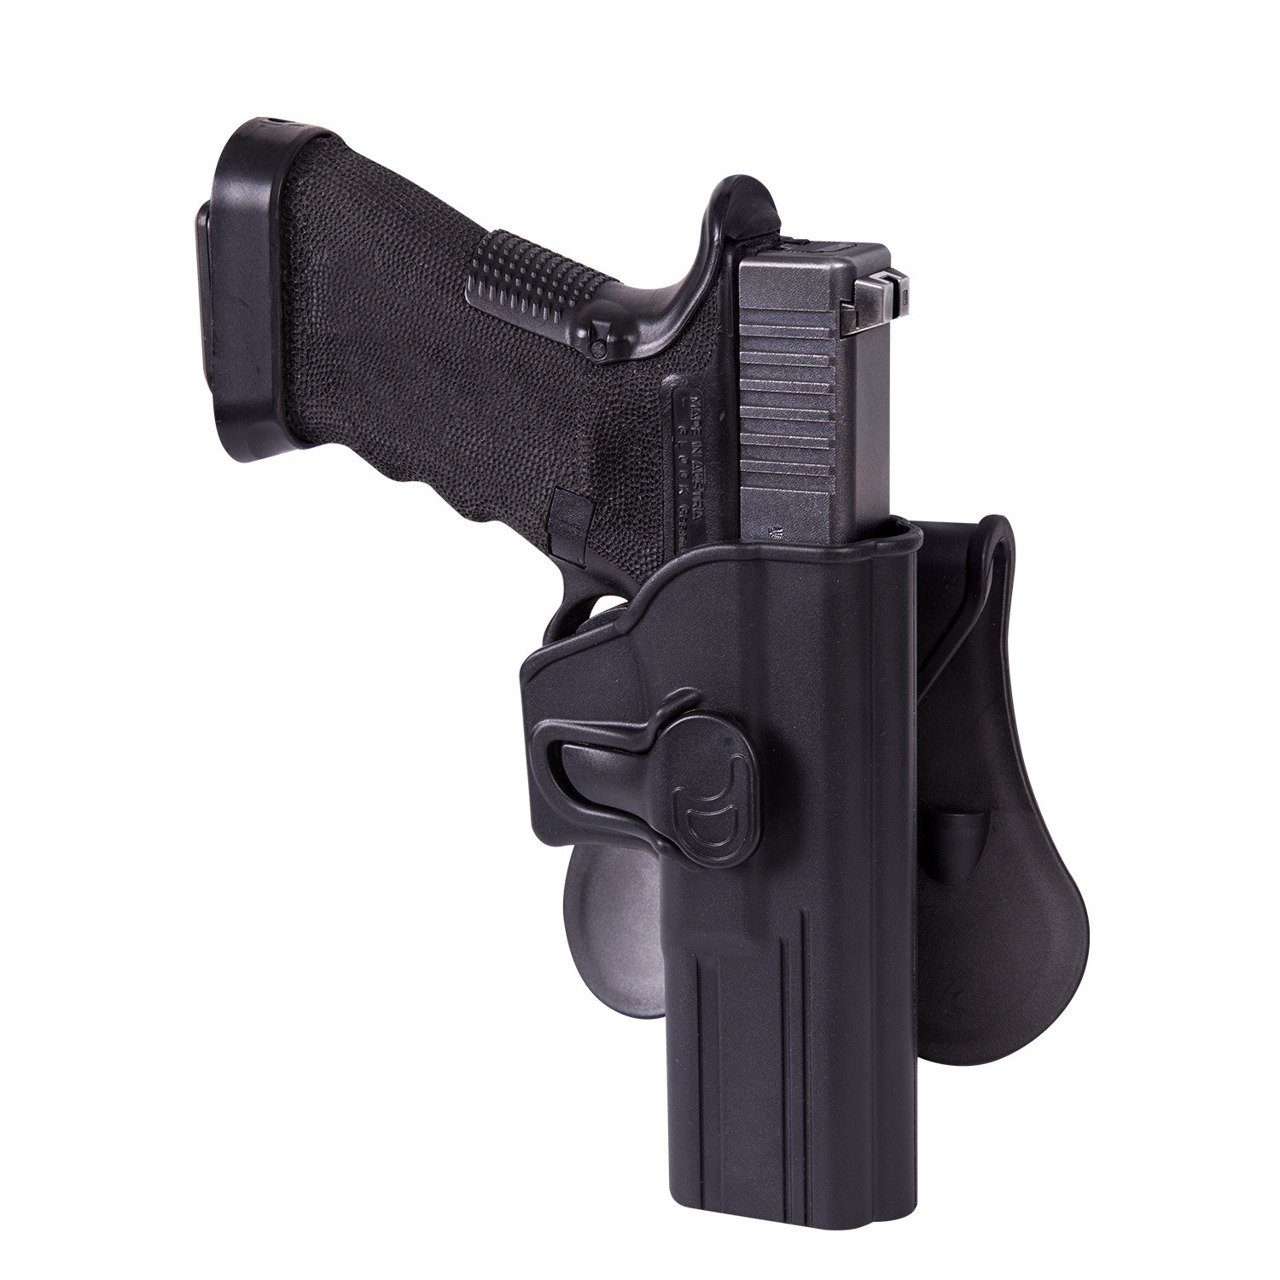 Leather Tactical Military Army Small Gun Holster Shooting Pistol Holster KB